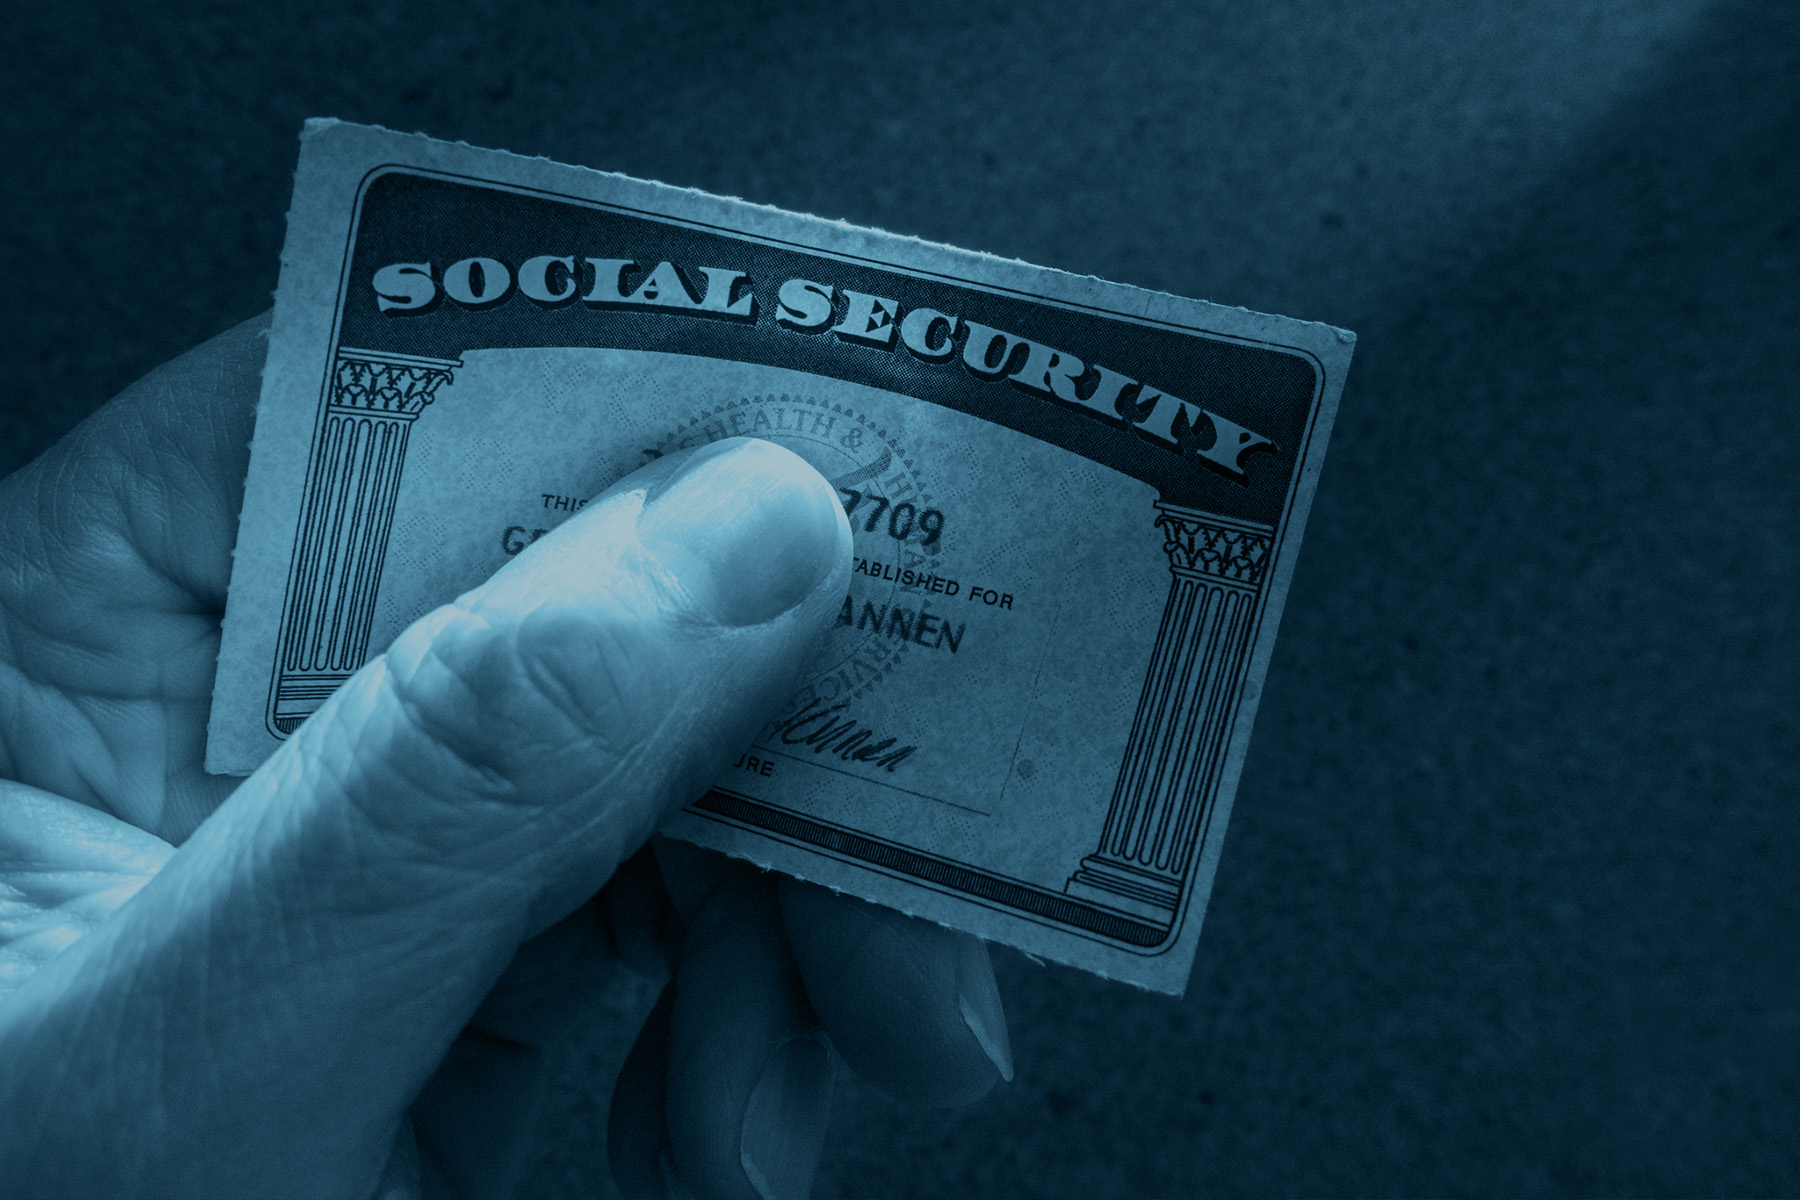 Dedicated lawyers to help with your Social Security case, Austin & Banks Law Firm, Injury Lawyers serving the Ada & Oklahoma City Area